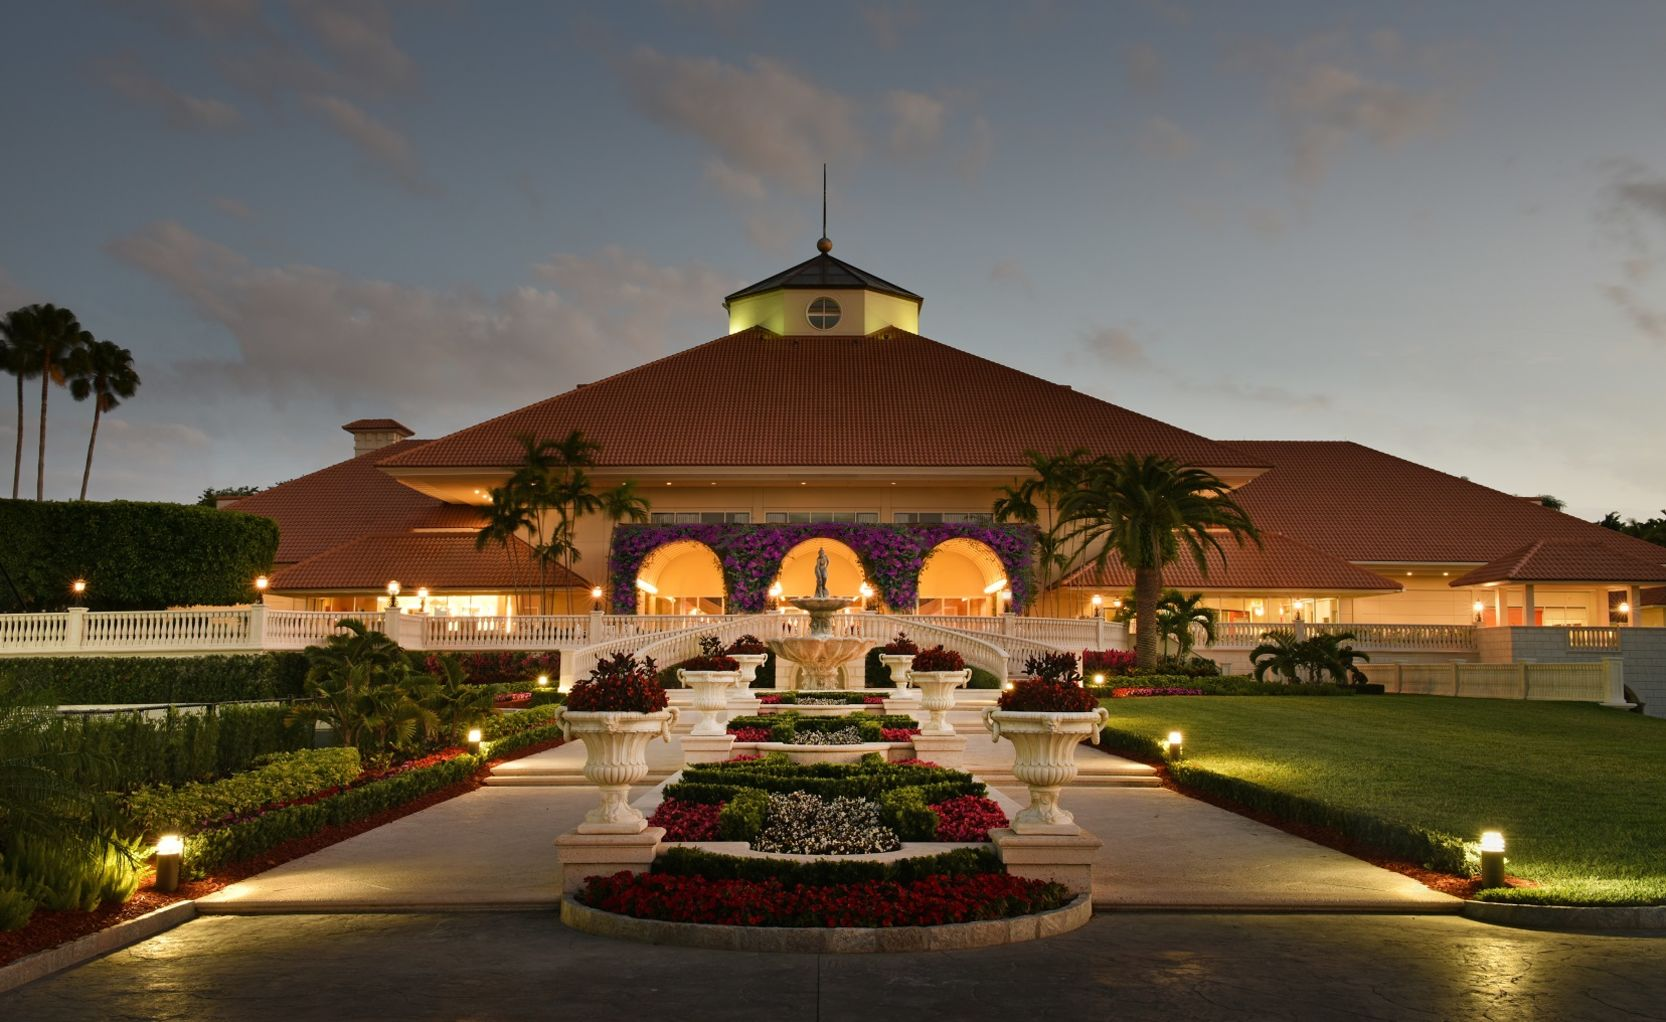 Trump Doral golf clubhouse